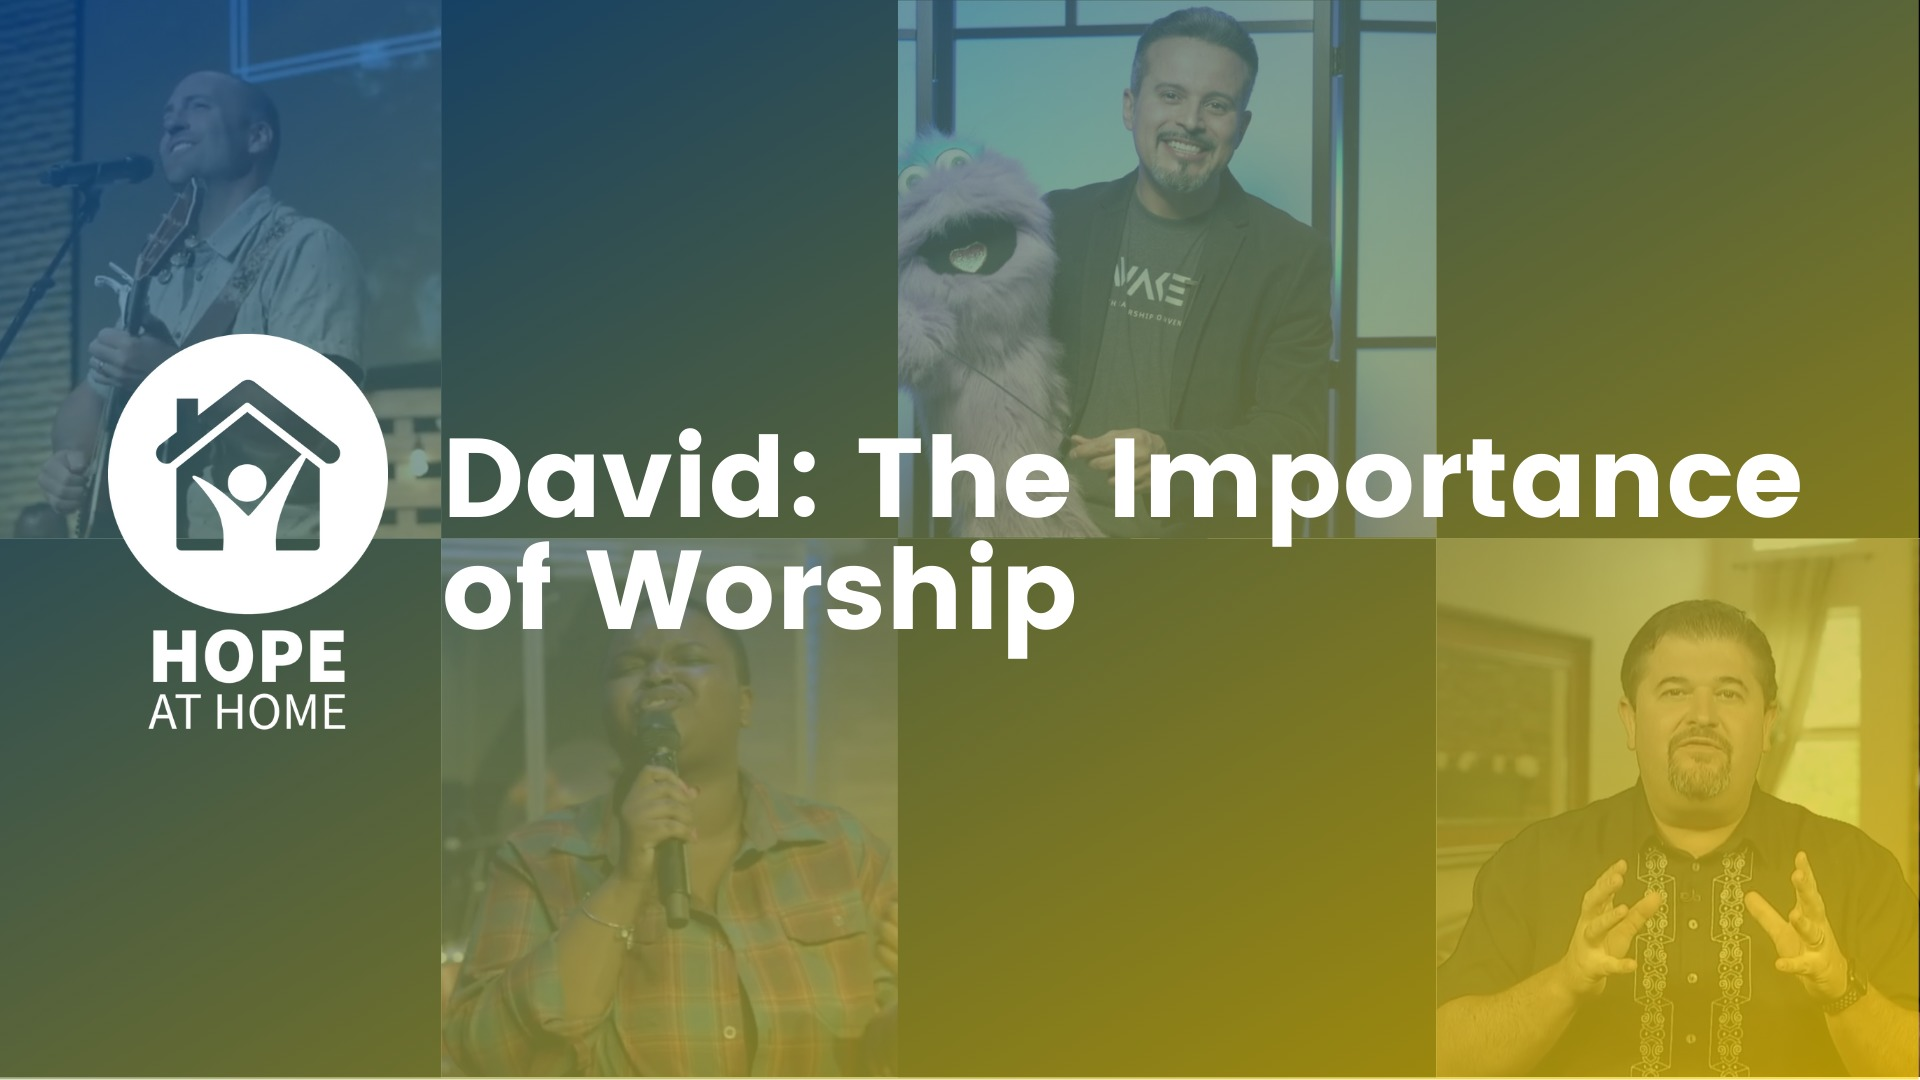 David: The Importance of Worship